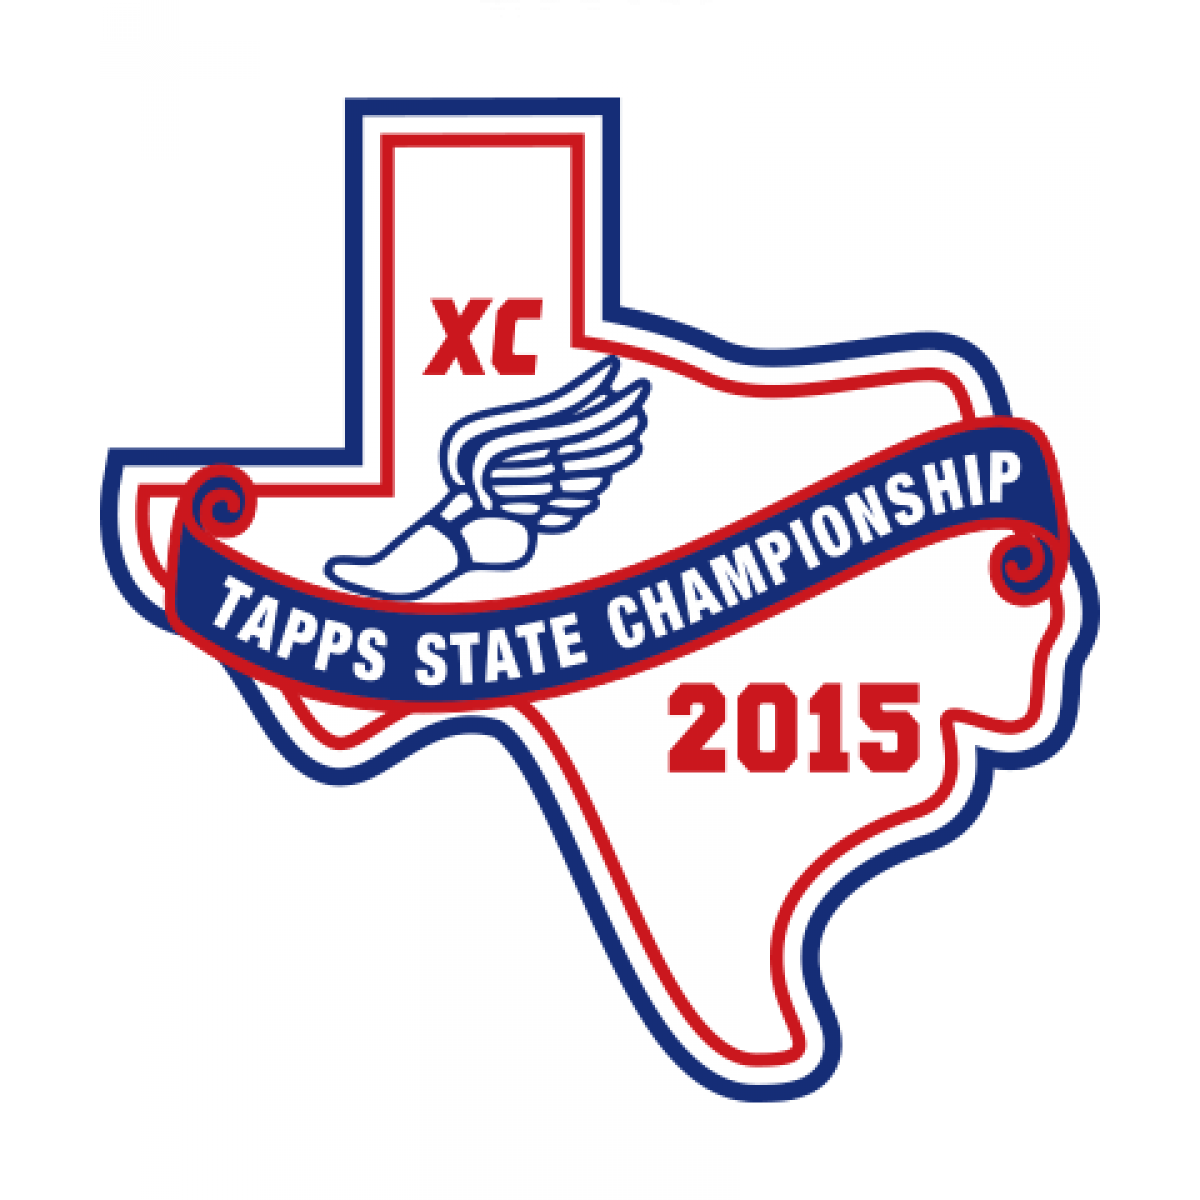 Felt 2015 TAPPS XC Championships Patch